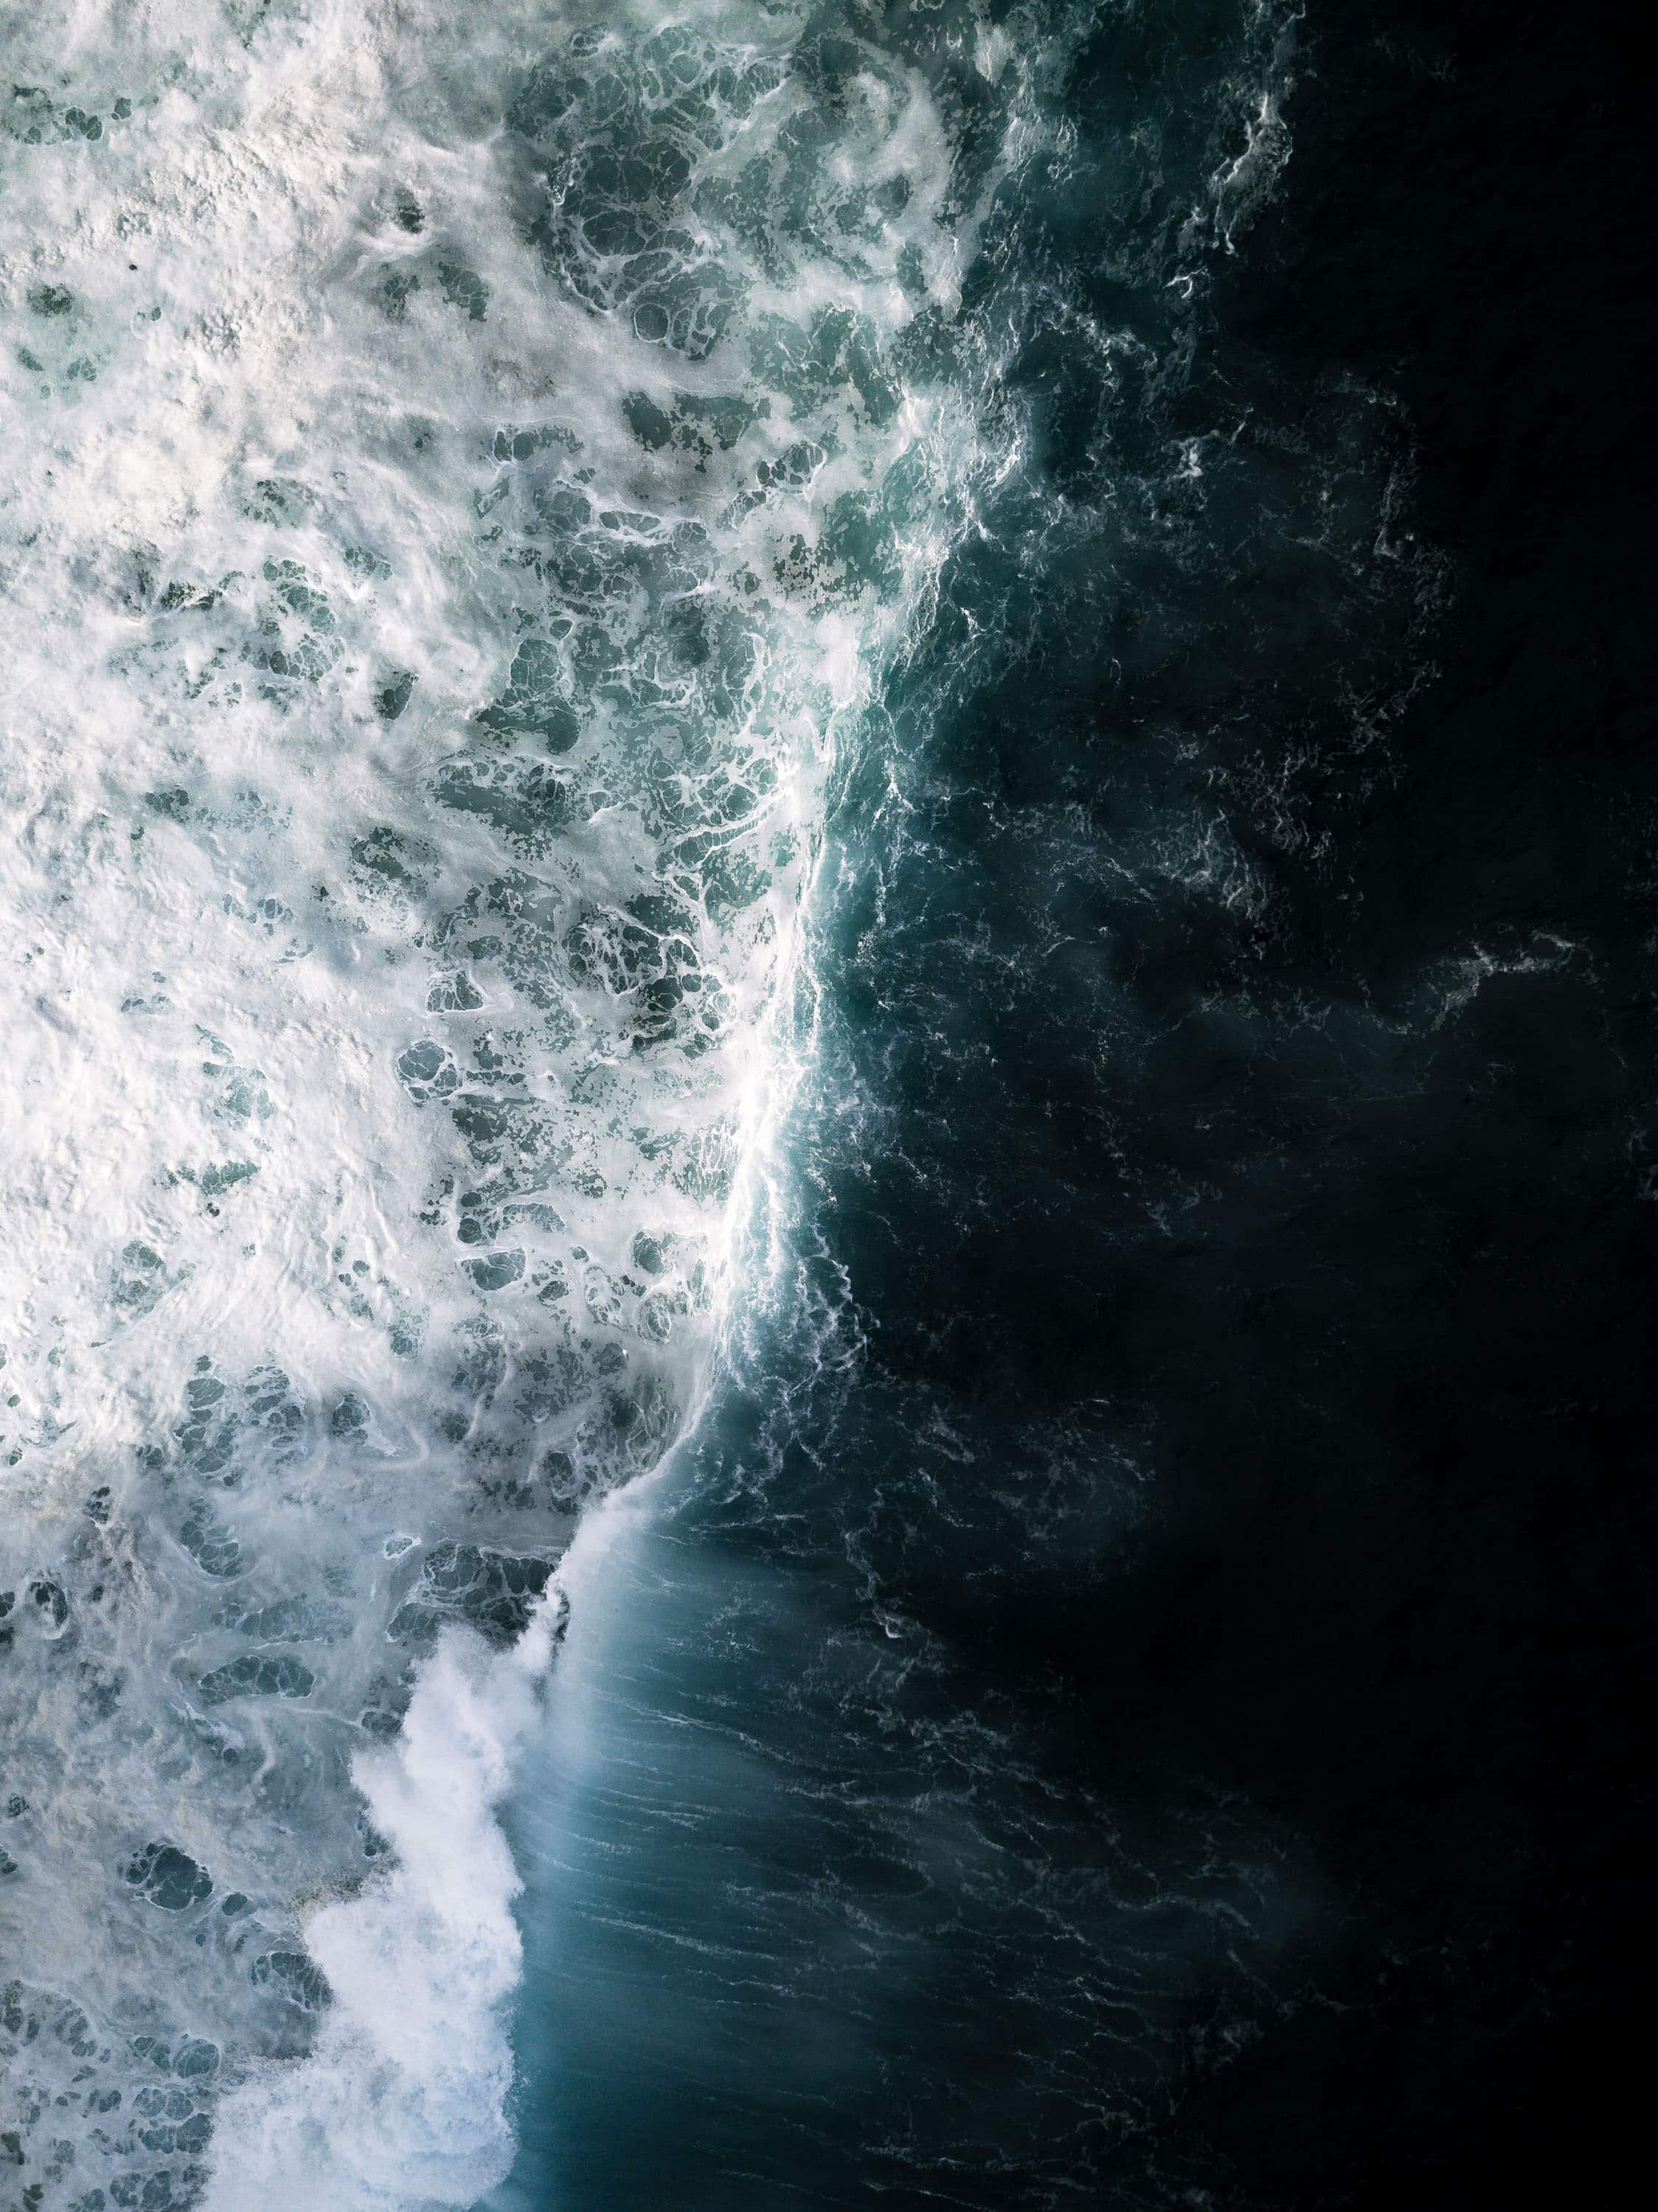 Drone image of crashing waves during sunset out on the Atlantic near Madeira island, Portugal by photographer Michael Schauer